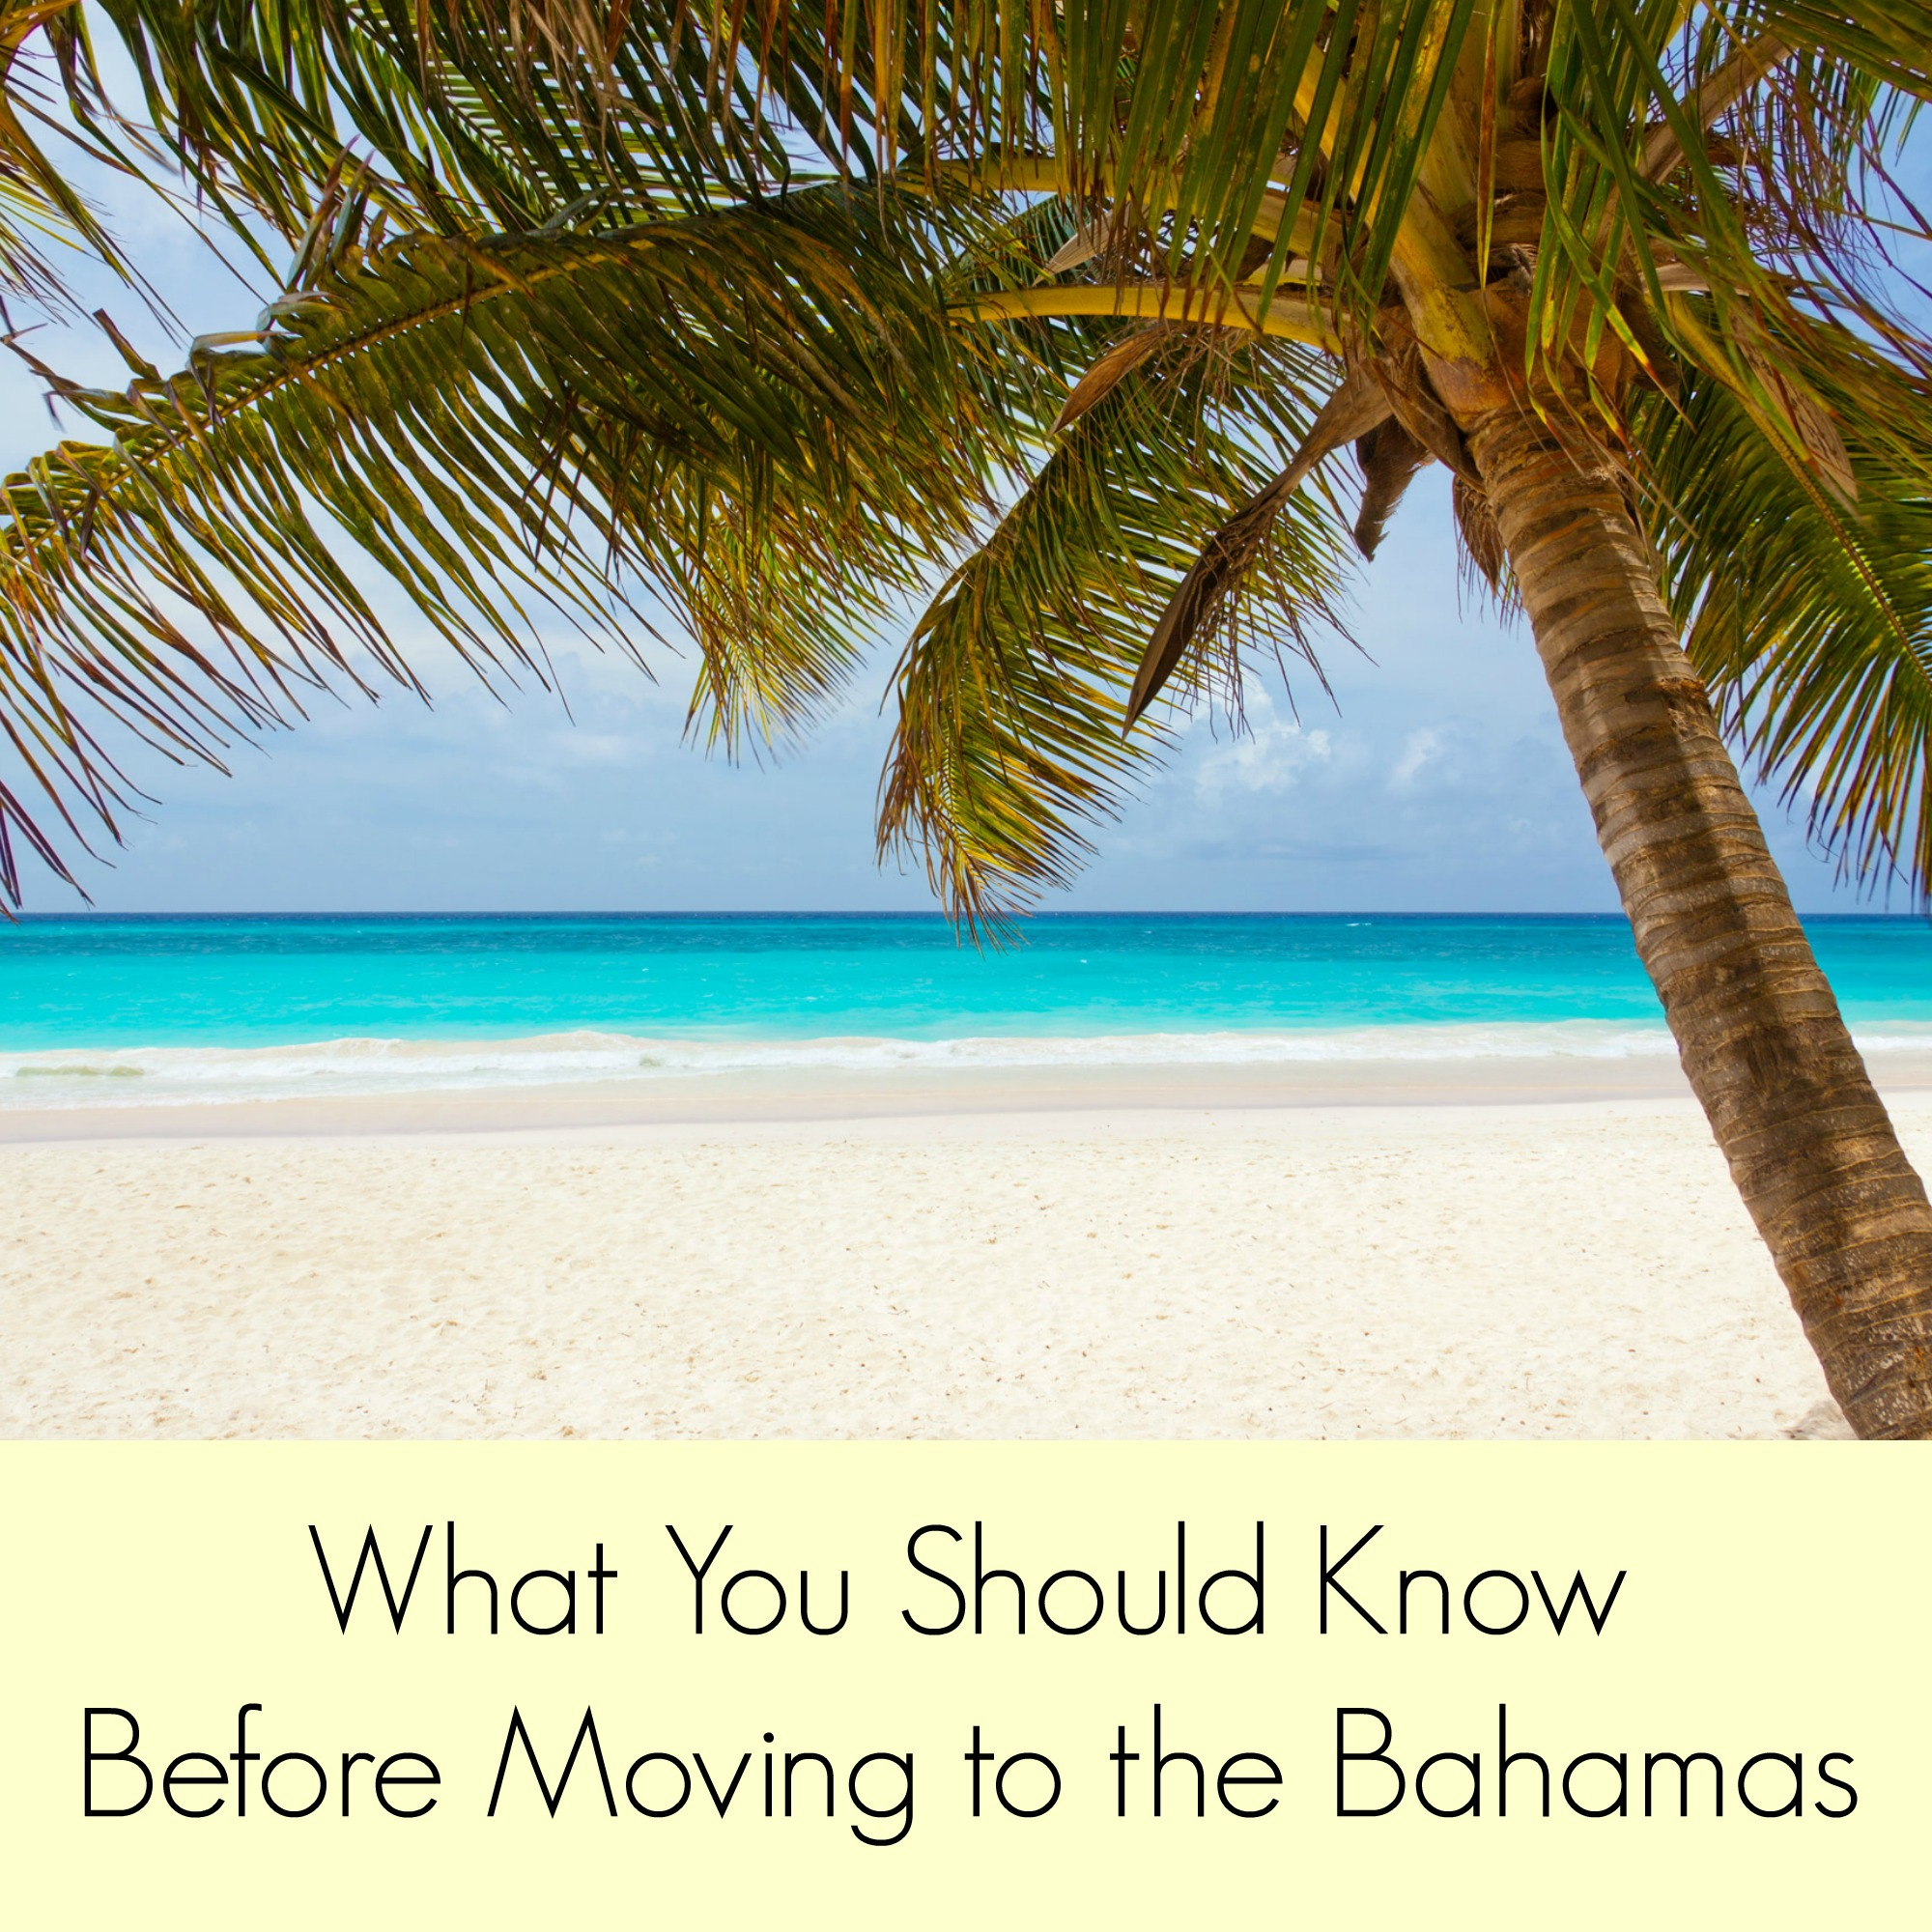 What You Should Know Before Moving to the Bahamas